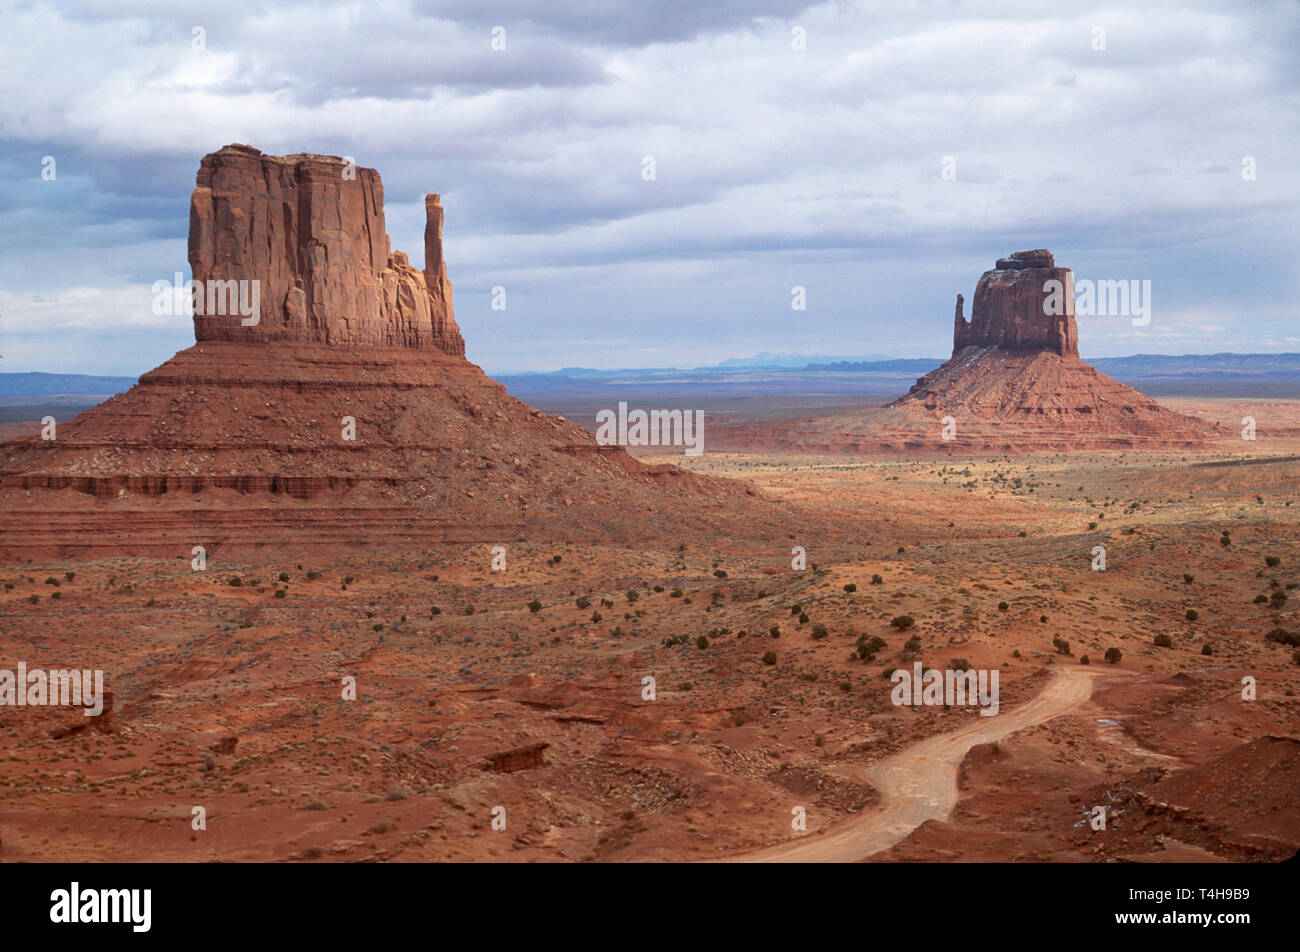 Arizona Navaho Indian Monument Valley Navajo Tribal Park East & West Mitten Buttes - Stock Image